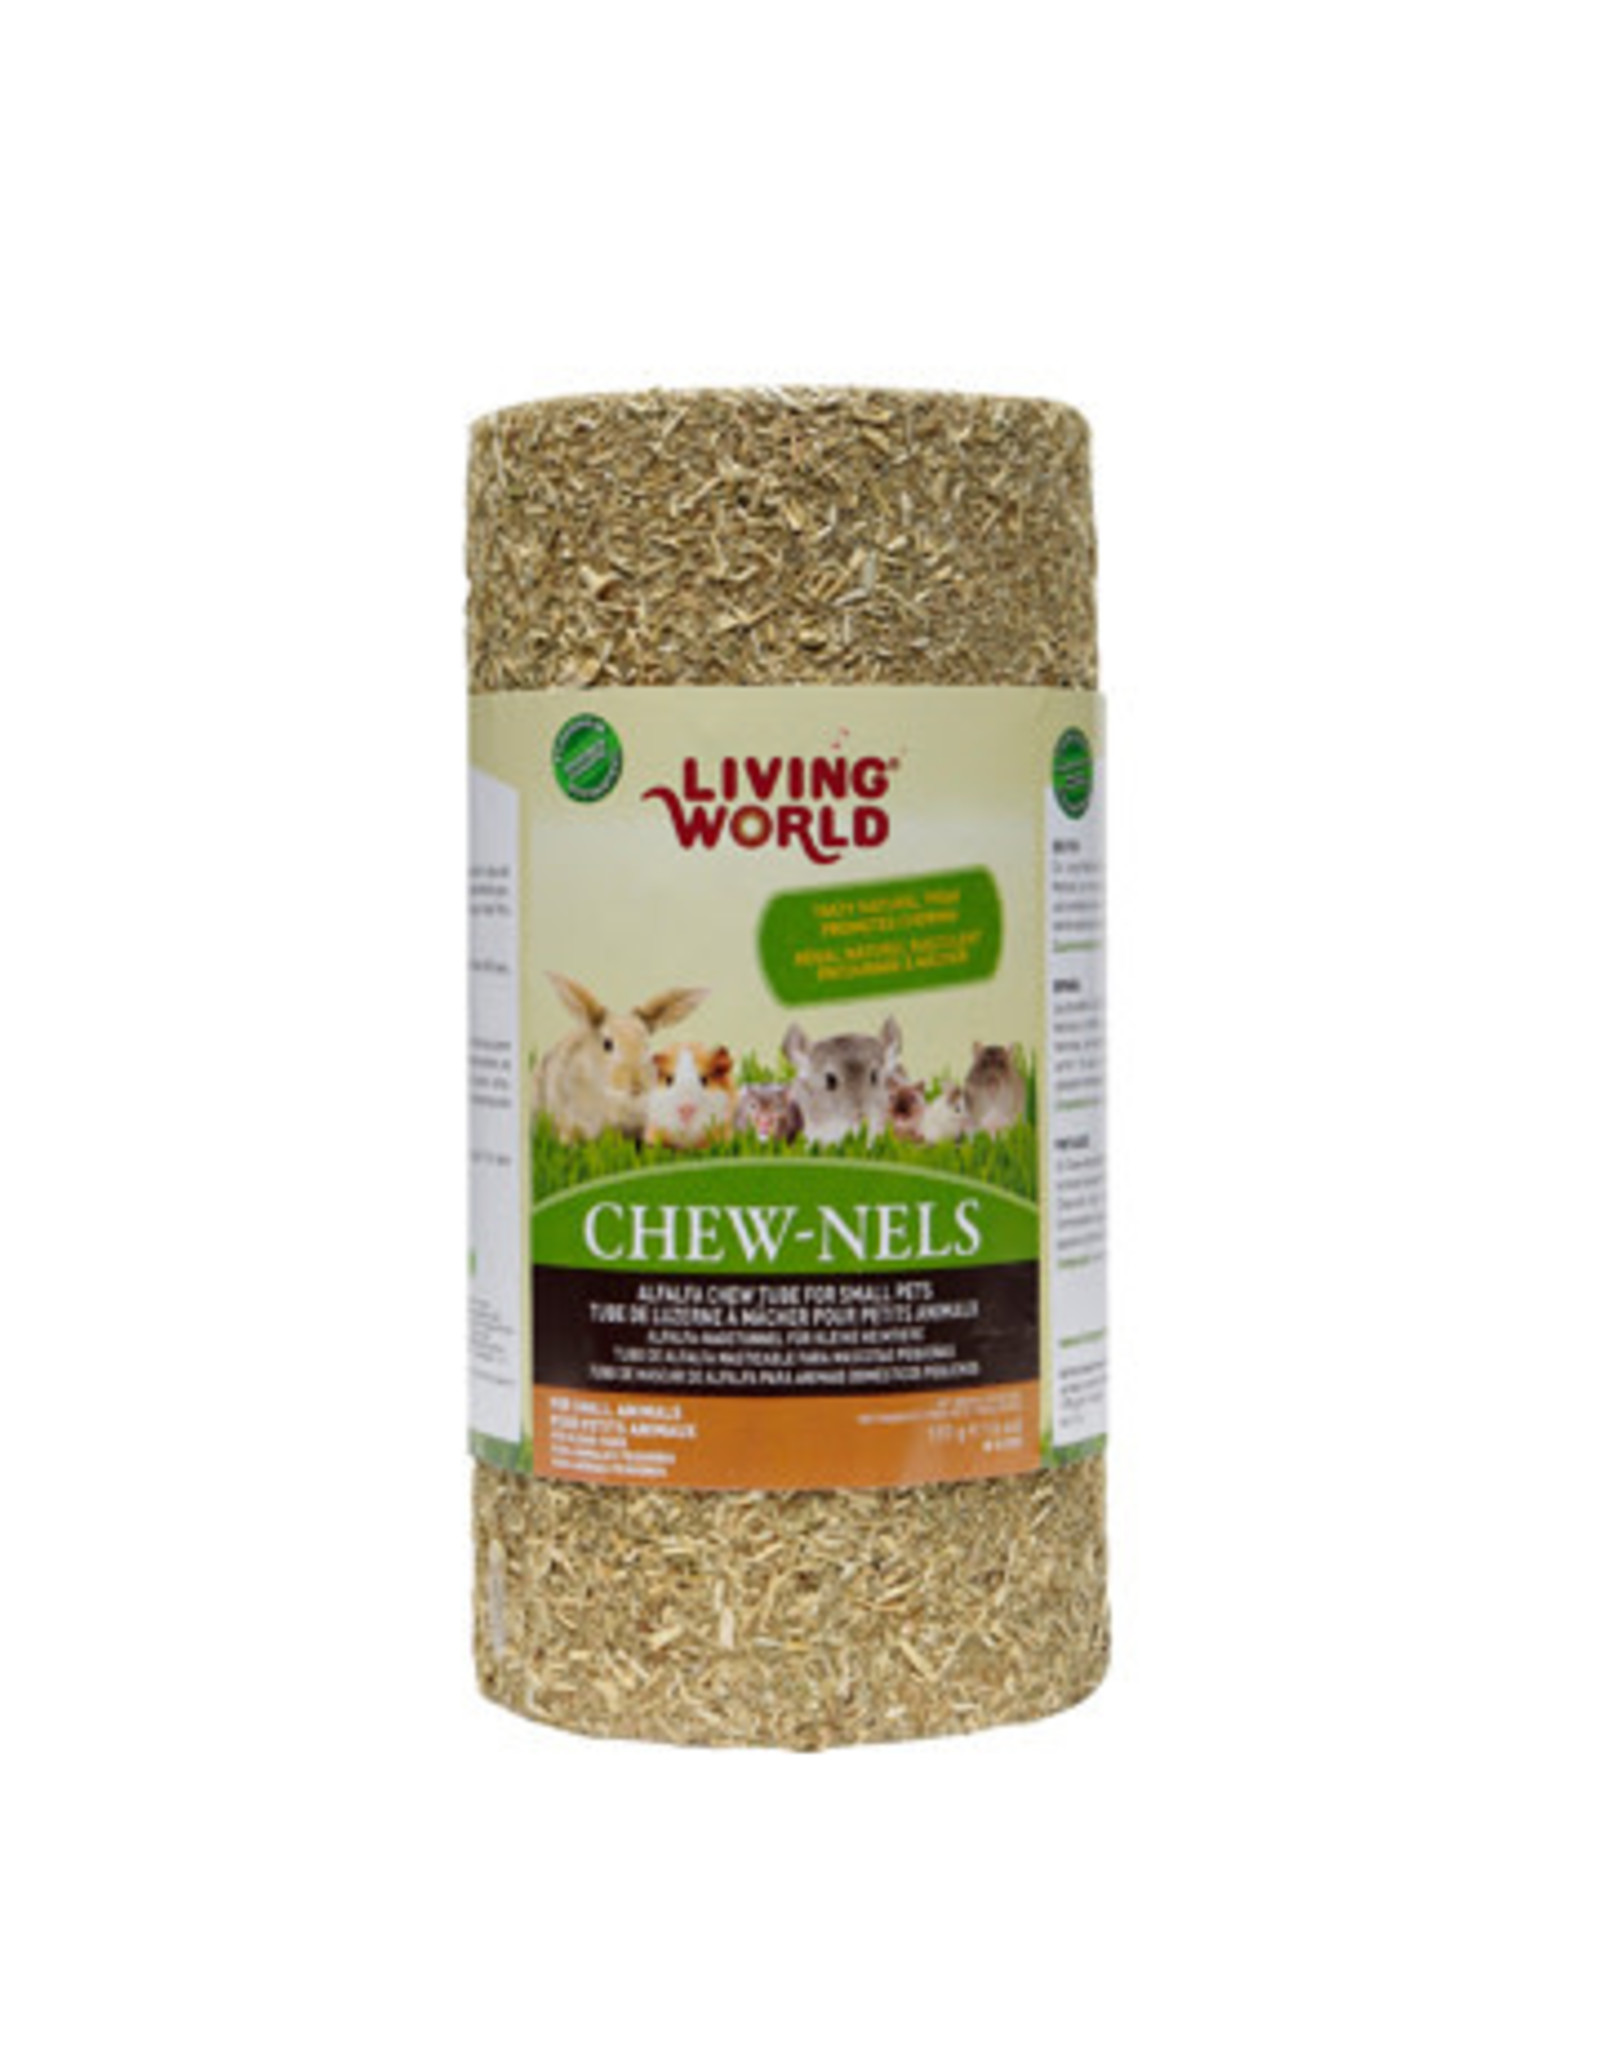 Living World Living World Alfalfa Chew-nels - Medium